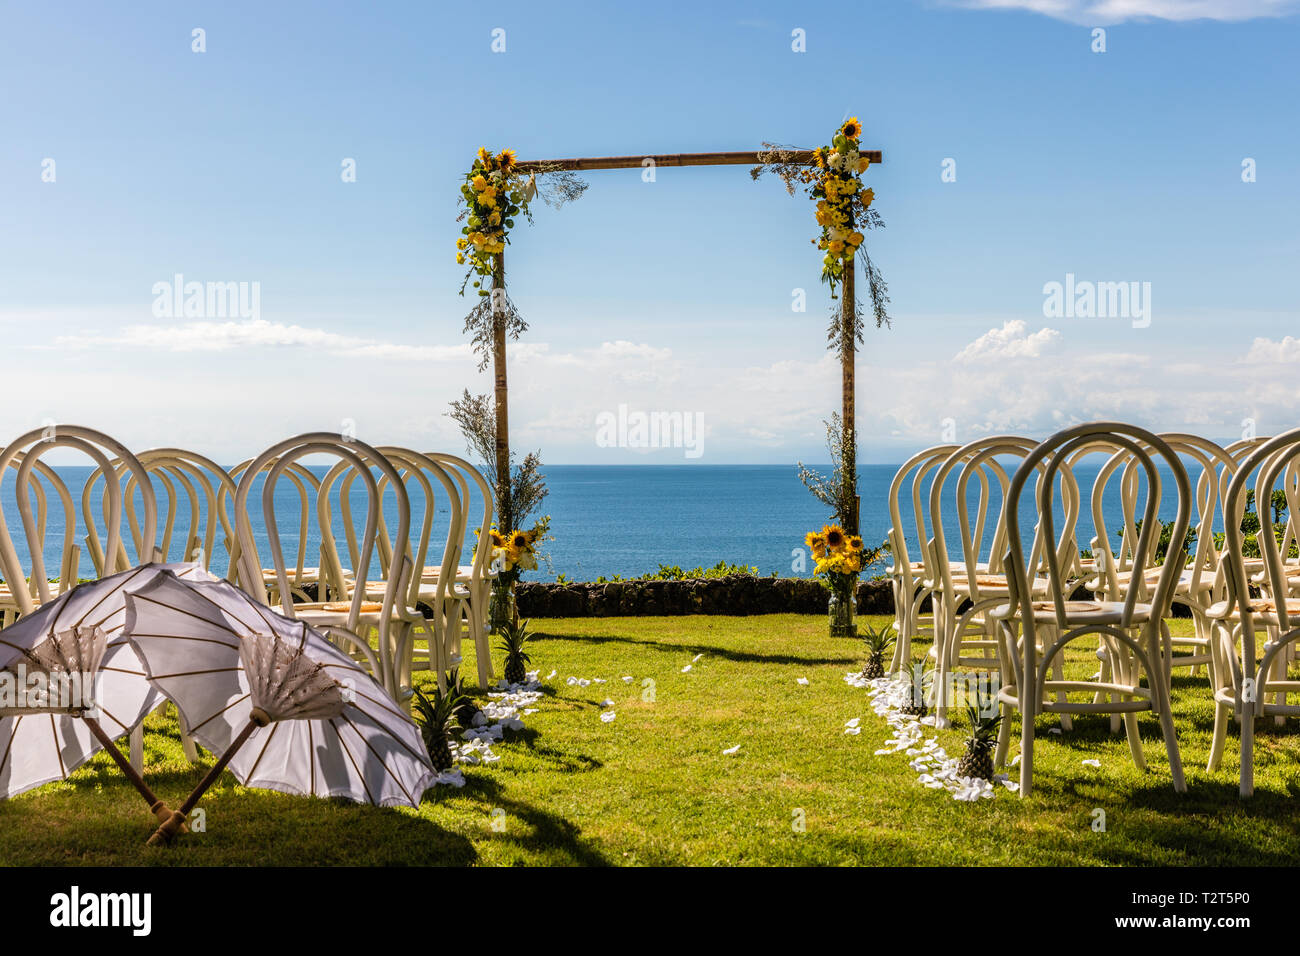 Wedding arch for a ceremony decorated with tropical flowers, and white chairs on the cliff edge of the ocean. Stock Photo